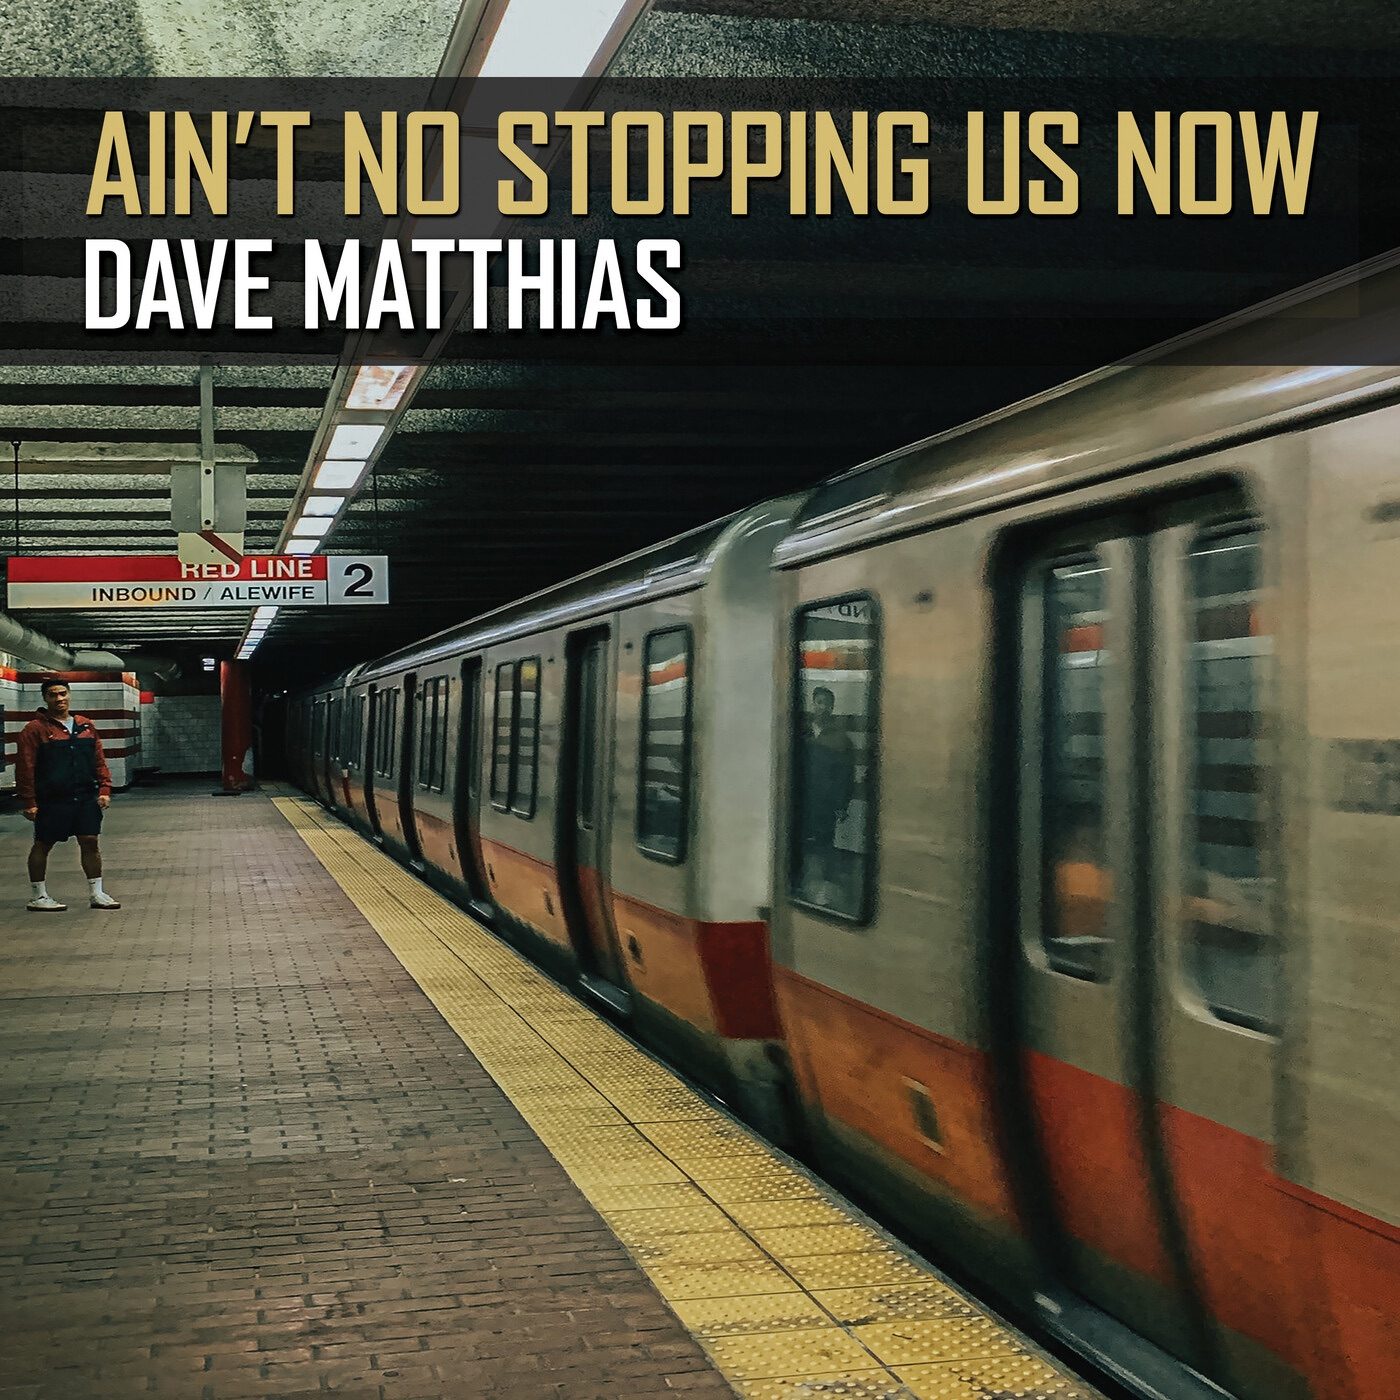 Dave Matthias (Ain't No Stopping Us Now)